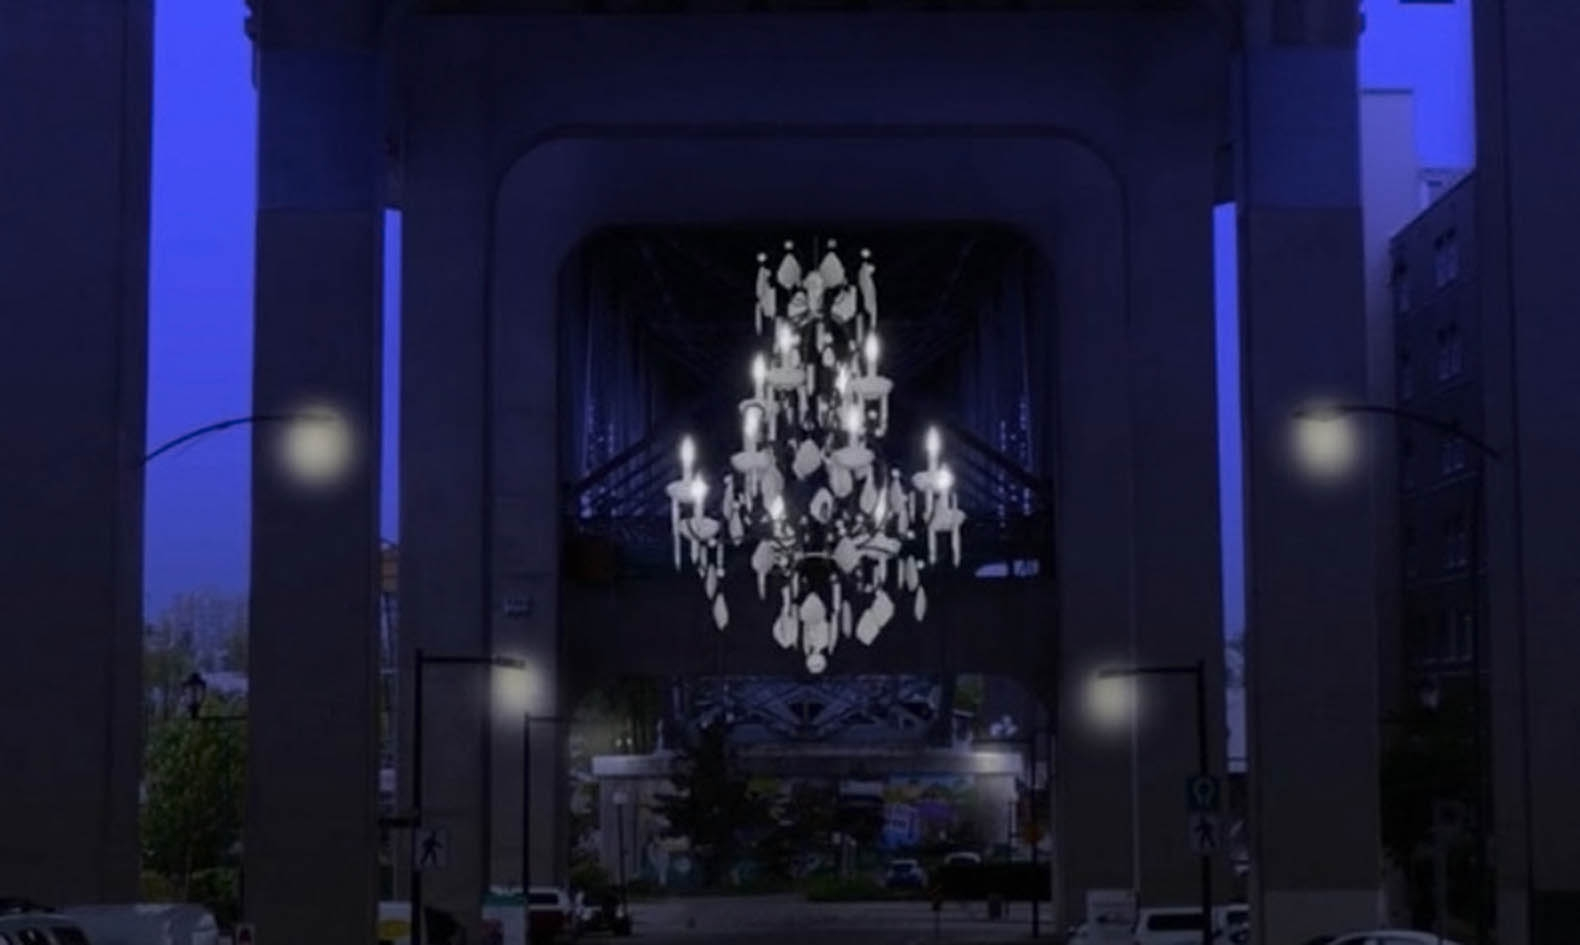 Vancouver Lights Up A Dark Highway Overpass With A Massive Regarding Massive Chandelier (Image 14 of 15)